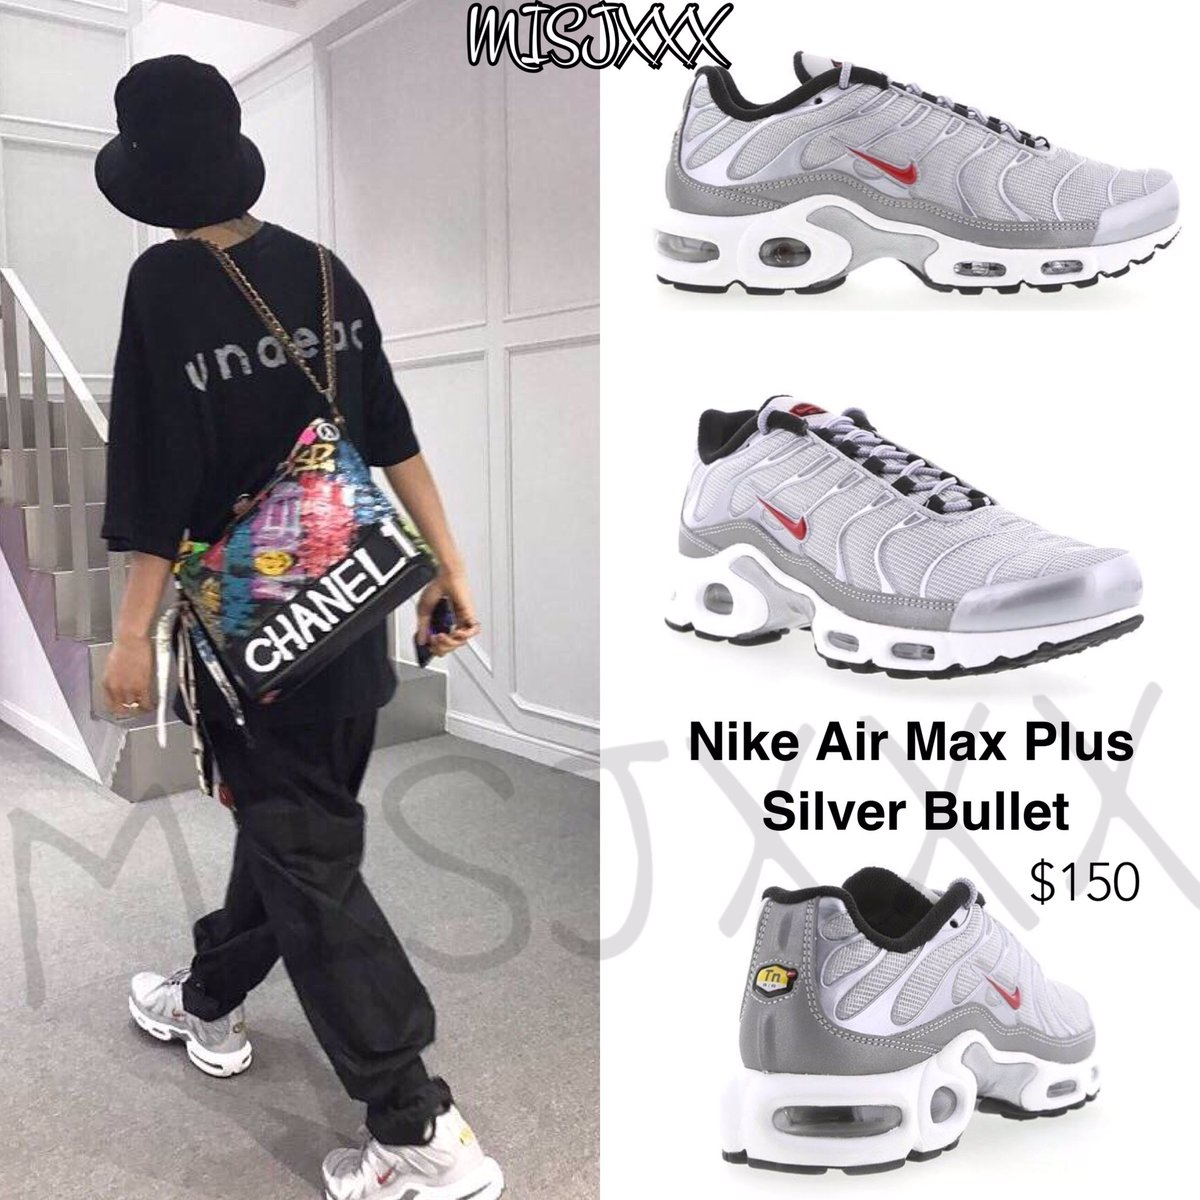 5402352c4e18 ... official store c45ea c4558 GDSTYLE on Twitter  free shipping b5fd8  b7b2b Nike Air Max Plus  replica 24a58 218db nike air max plus silver bullet  ...